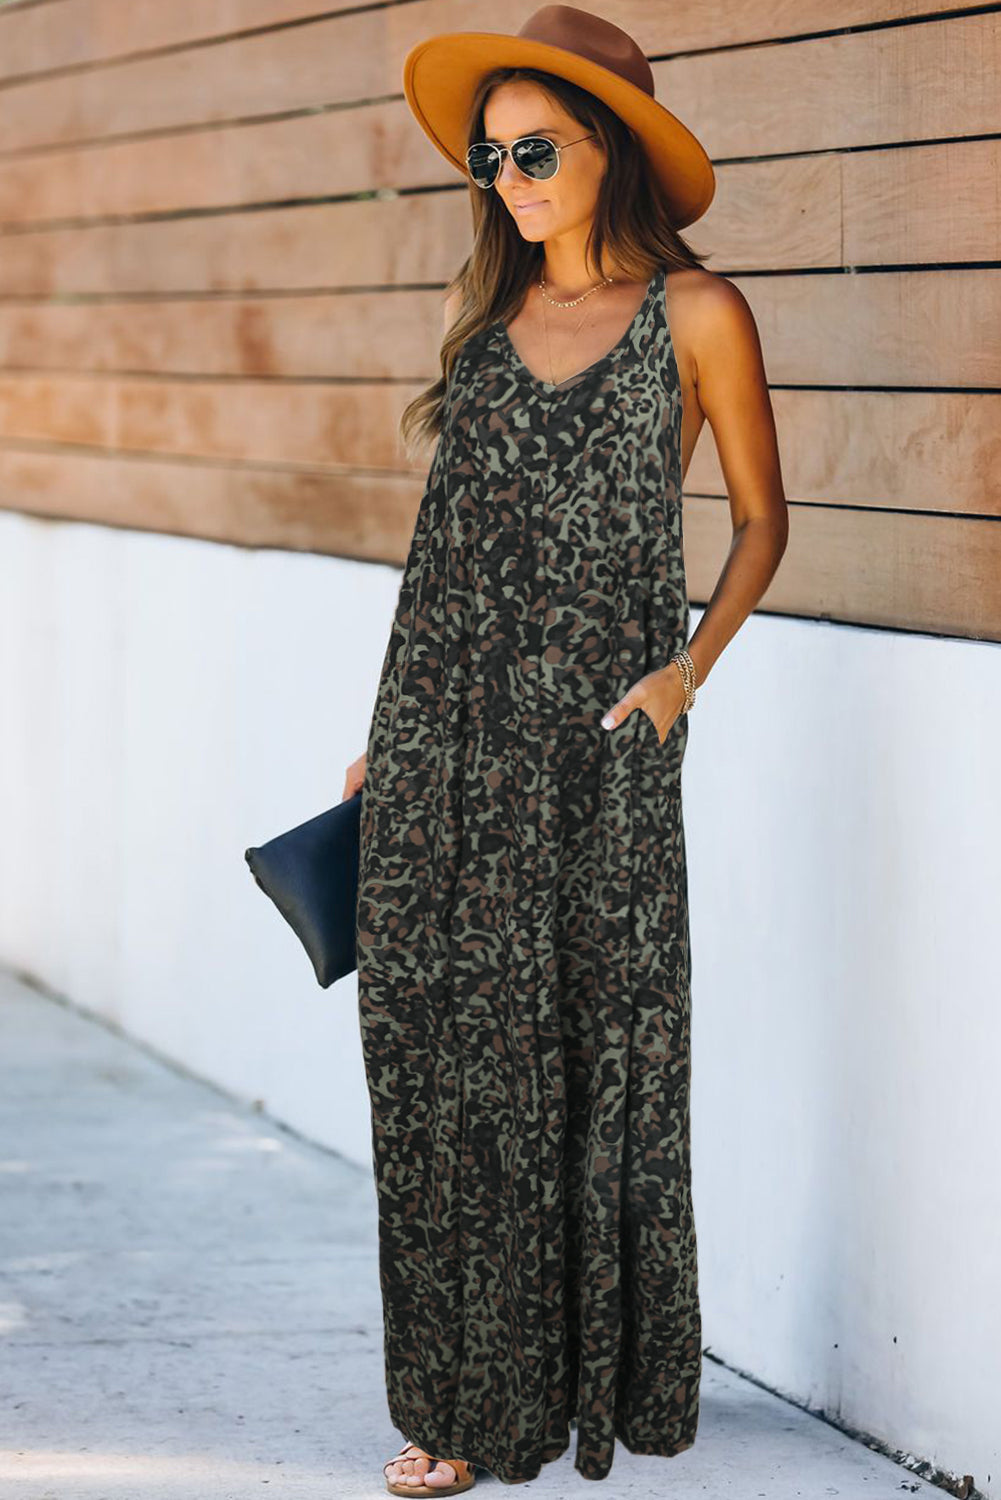 Green Leopard Sleeveless Cut-out Pocketed Maxi Dress Maxi Dresses Discount Designer Fashion Clothes Shoes Bags Women Men Kids Children Black Owned Business